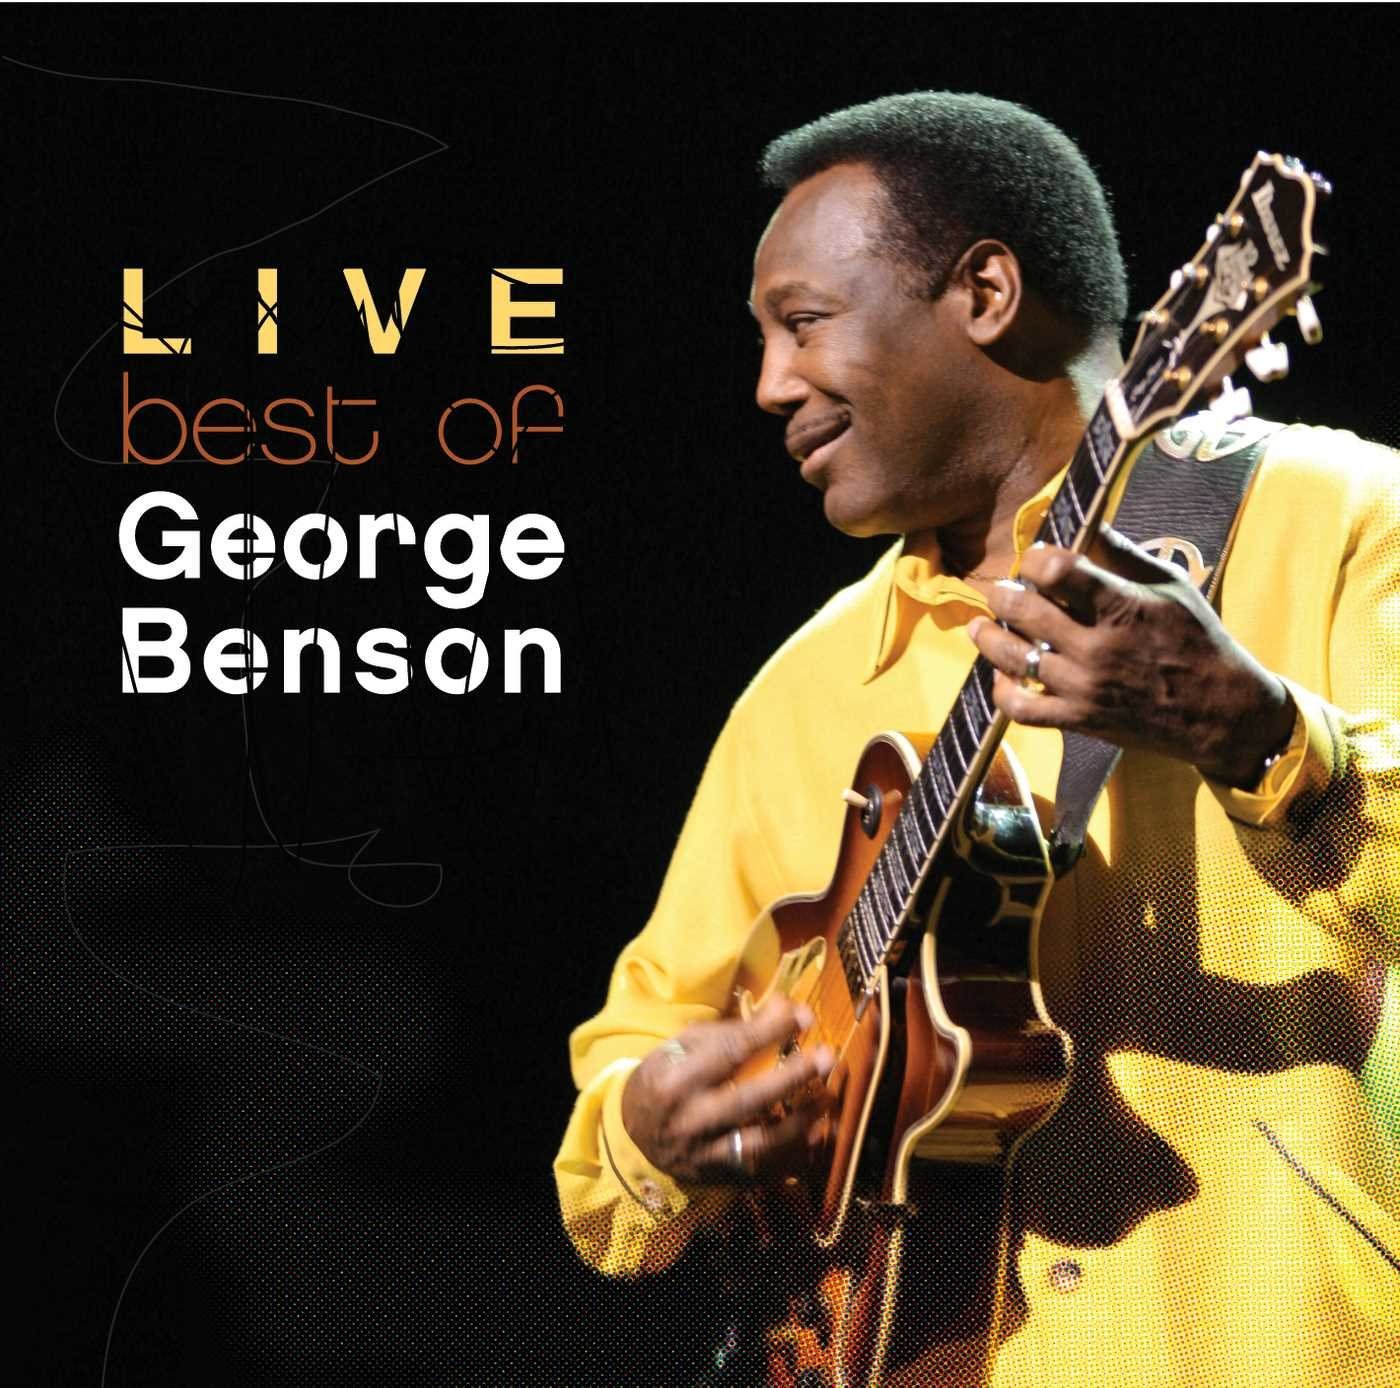 Best Of George Benson Live